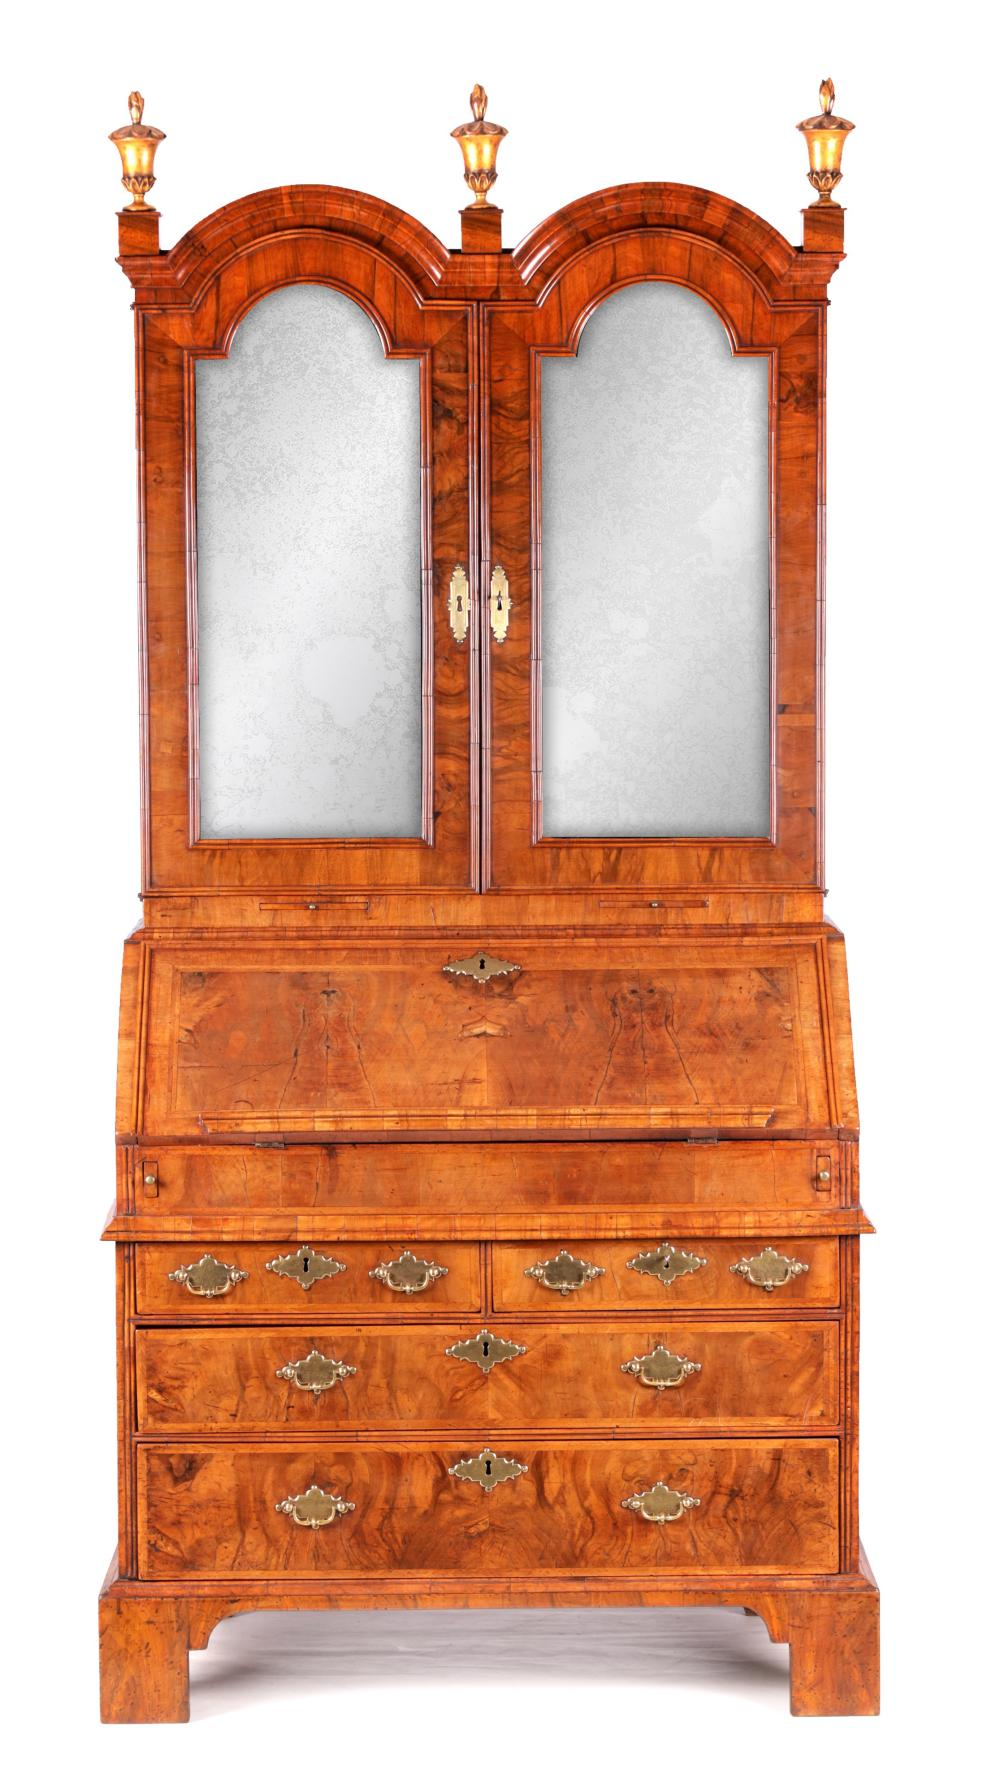 A WILLIAM AND MARY HERRING-BANDED AND FIGURED WALNUT BUREAU BOOKCASE